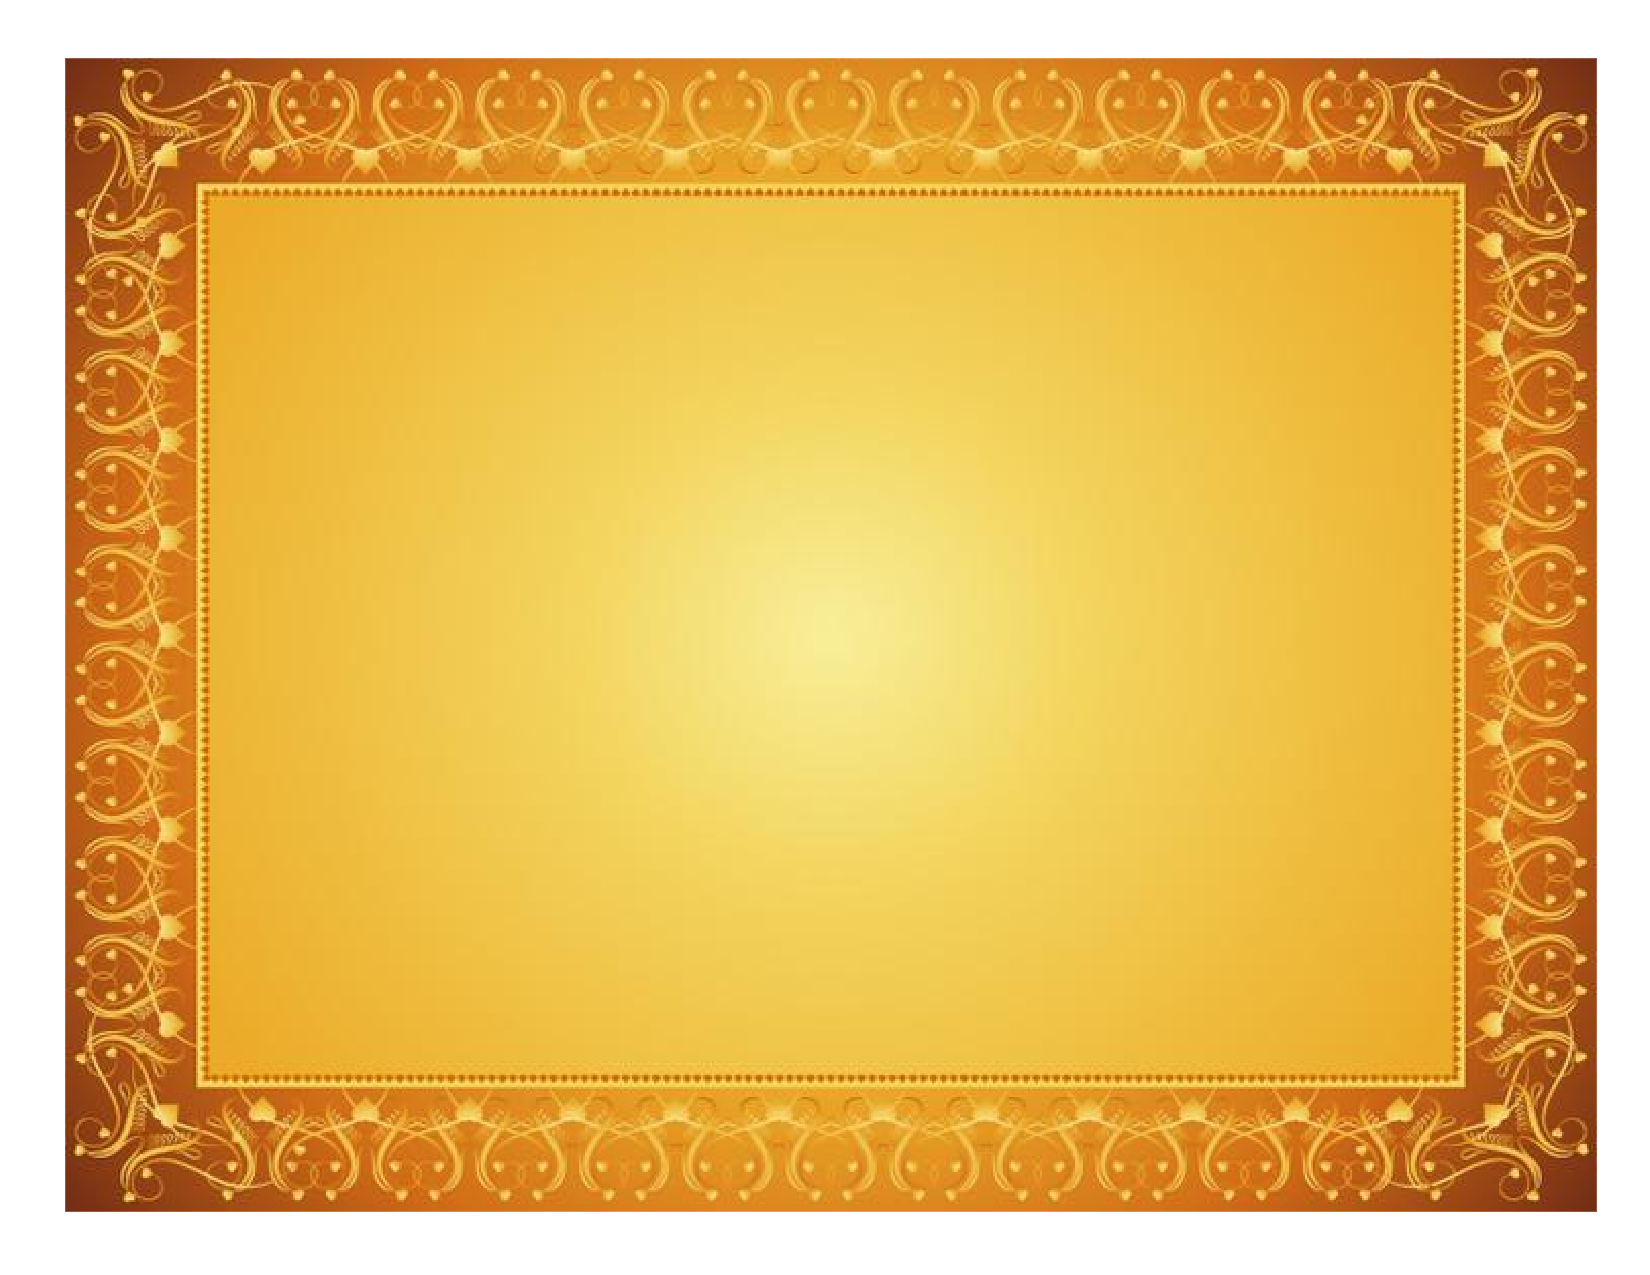 Download Certificate Template PNG images transparent gallery. Advertisement - Certificate Template PNG